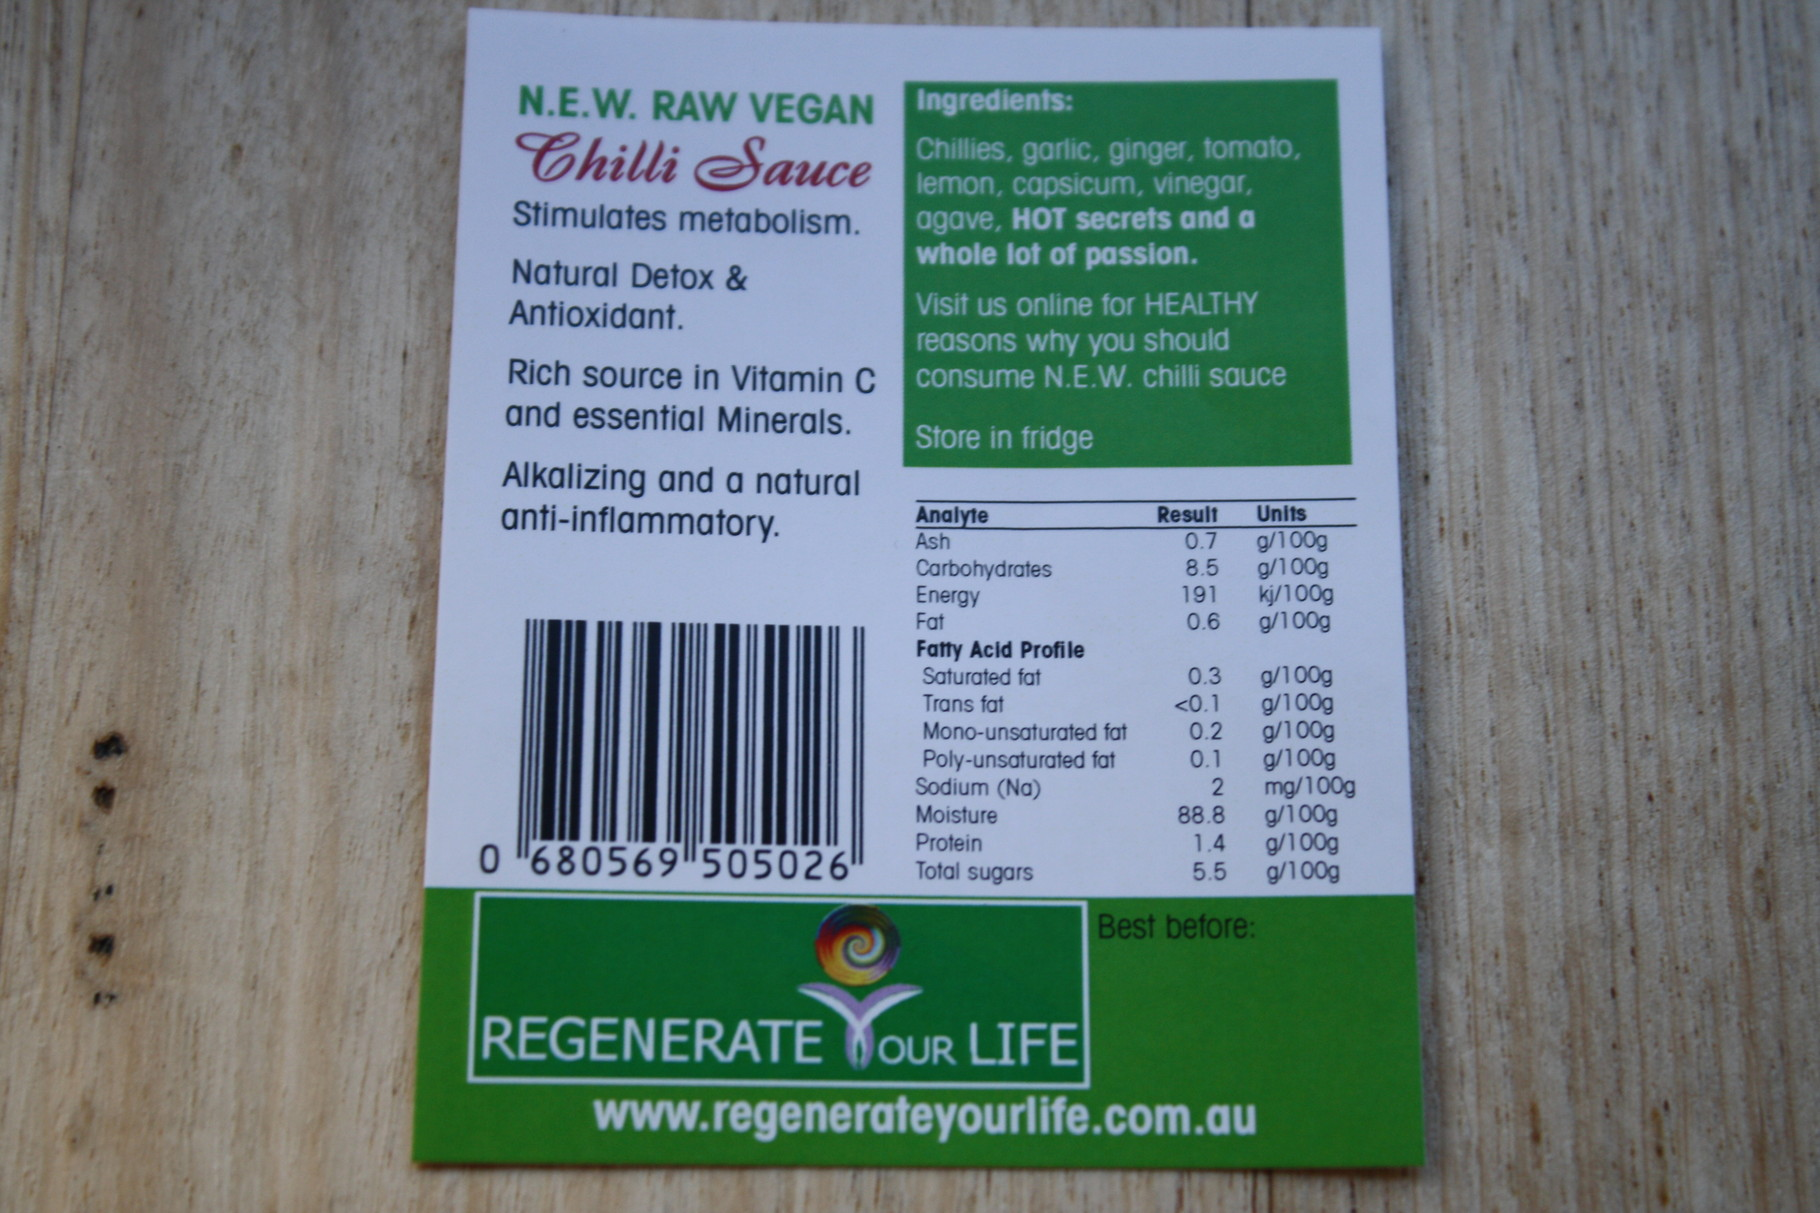 N.E.W. Raw Vegan Chilli Sauce Analysis